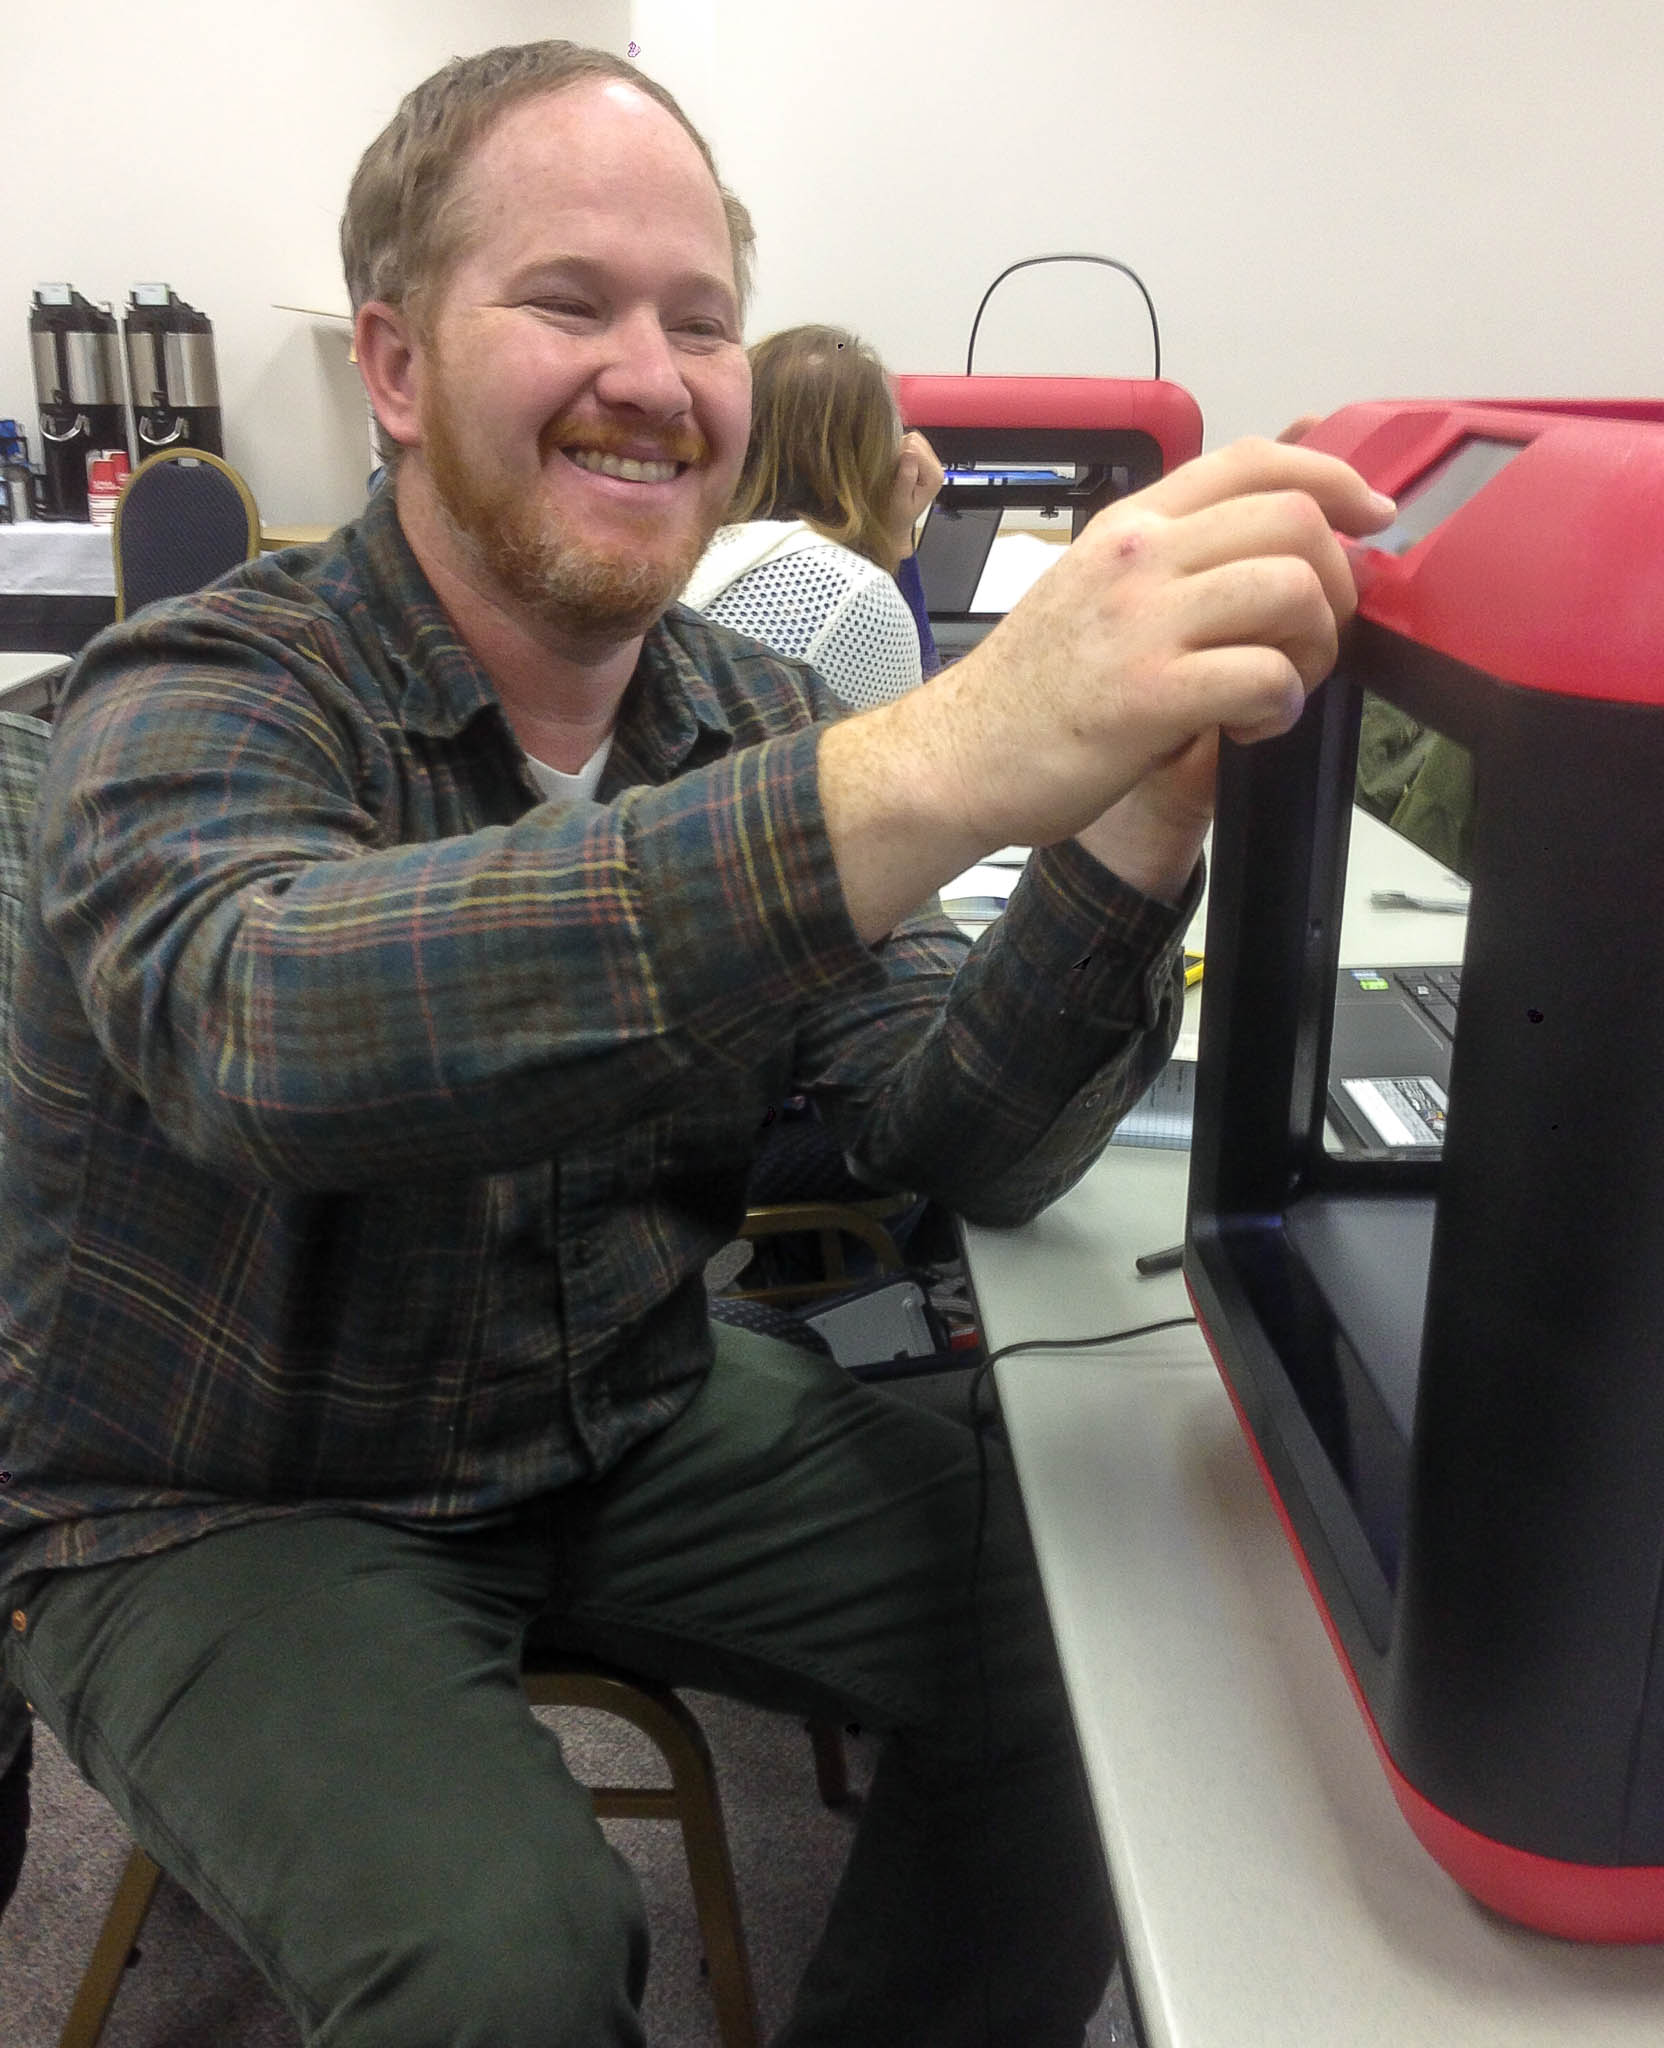 A photo of a white man with a reddish beard smiling. He is seated next to a red and black MakerBot 3D printer.